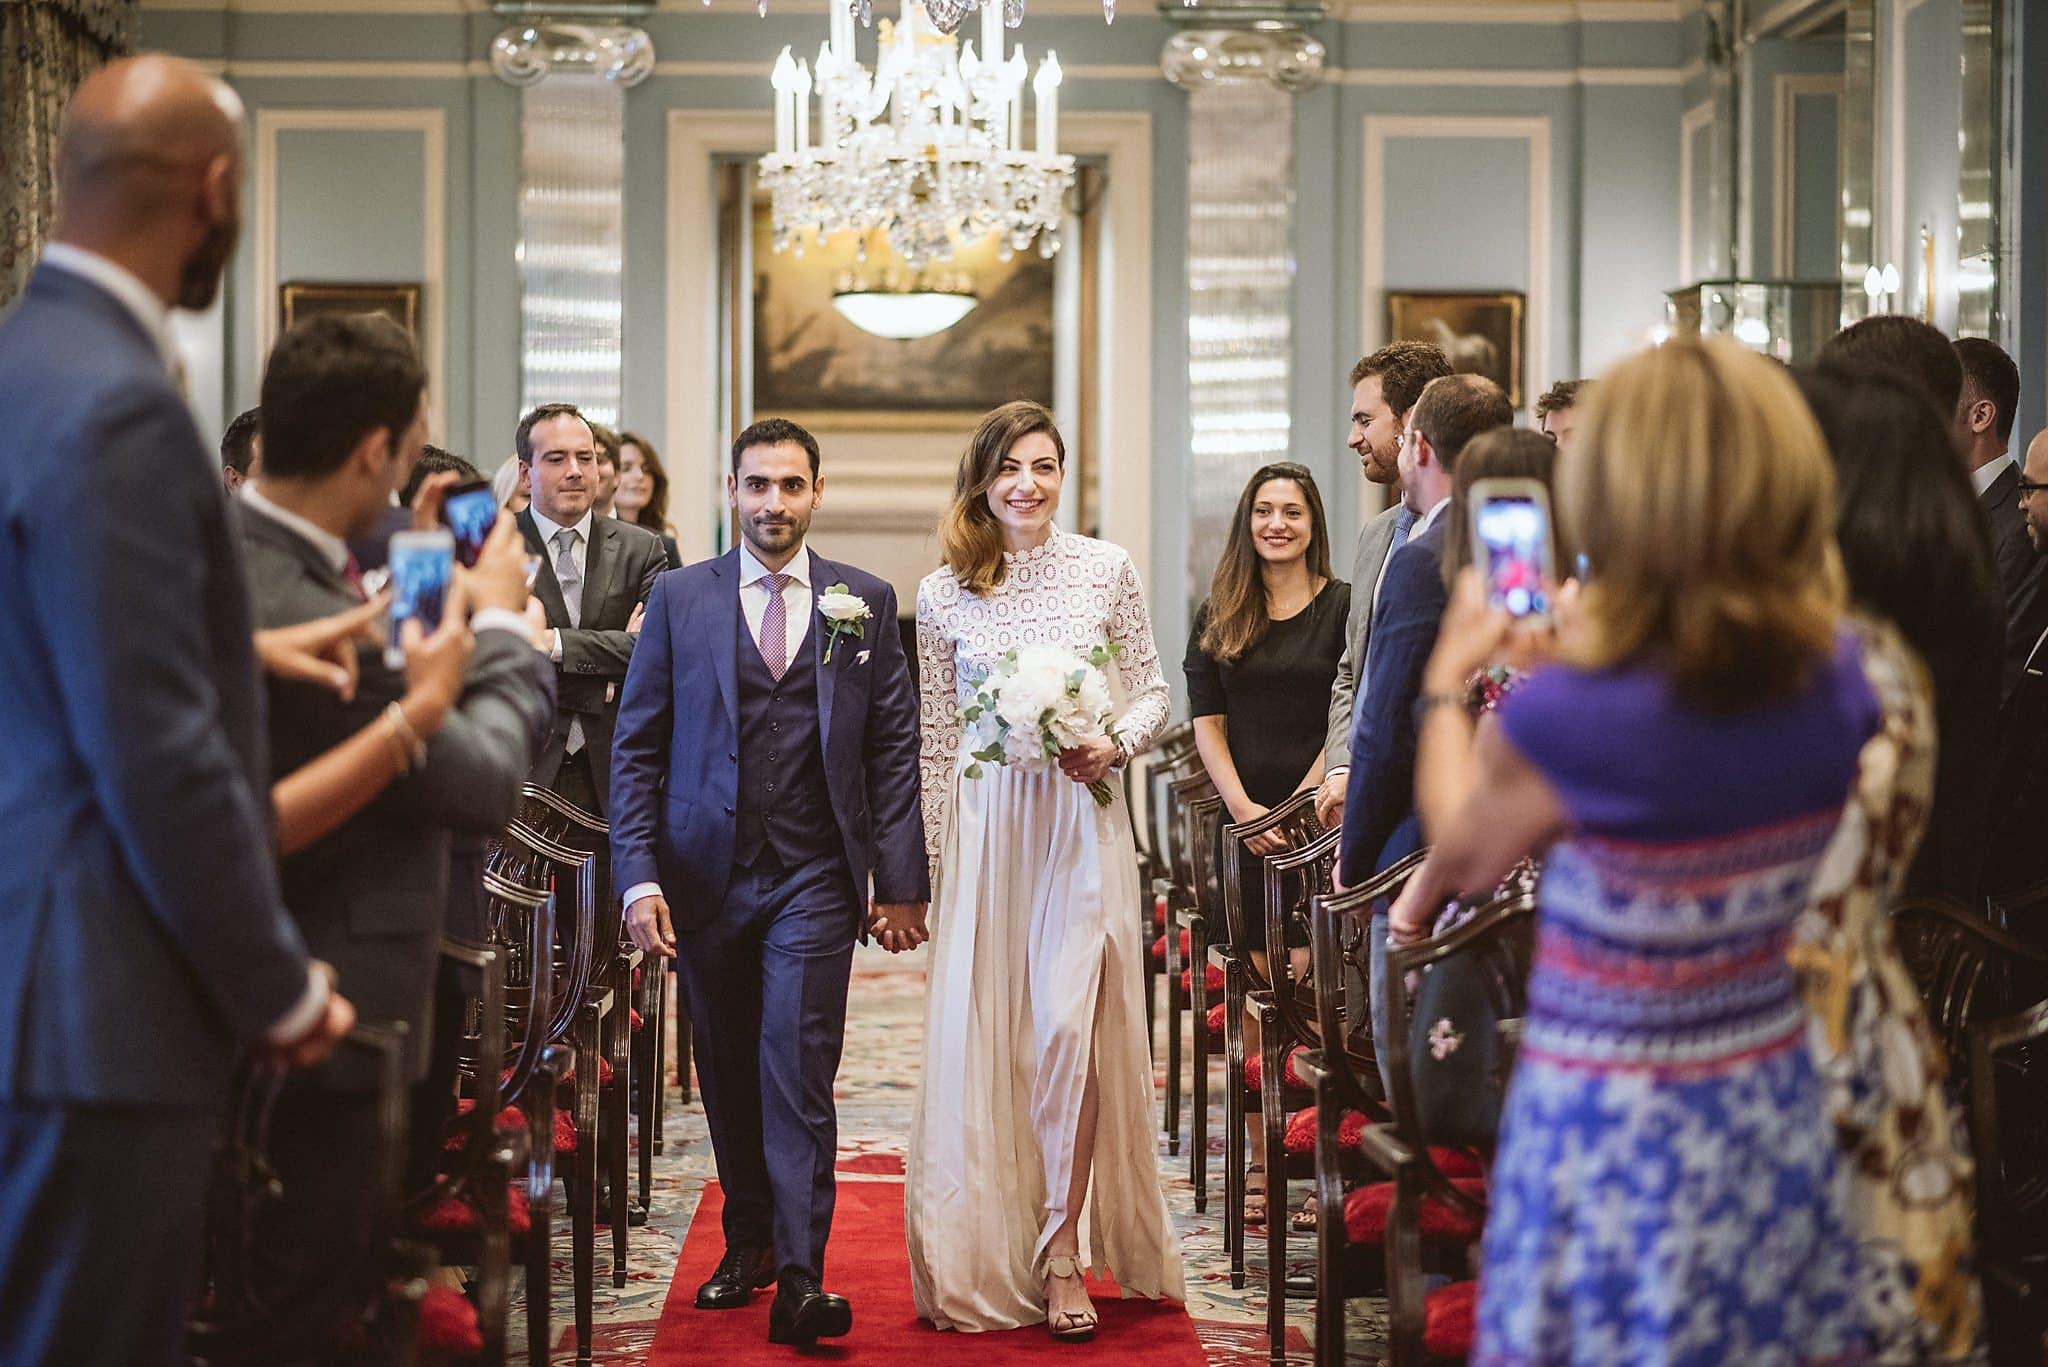 Bride and groom walk down the aisle at their Lanesborough Hotel Wedding Ceremony